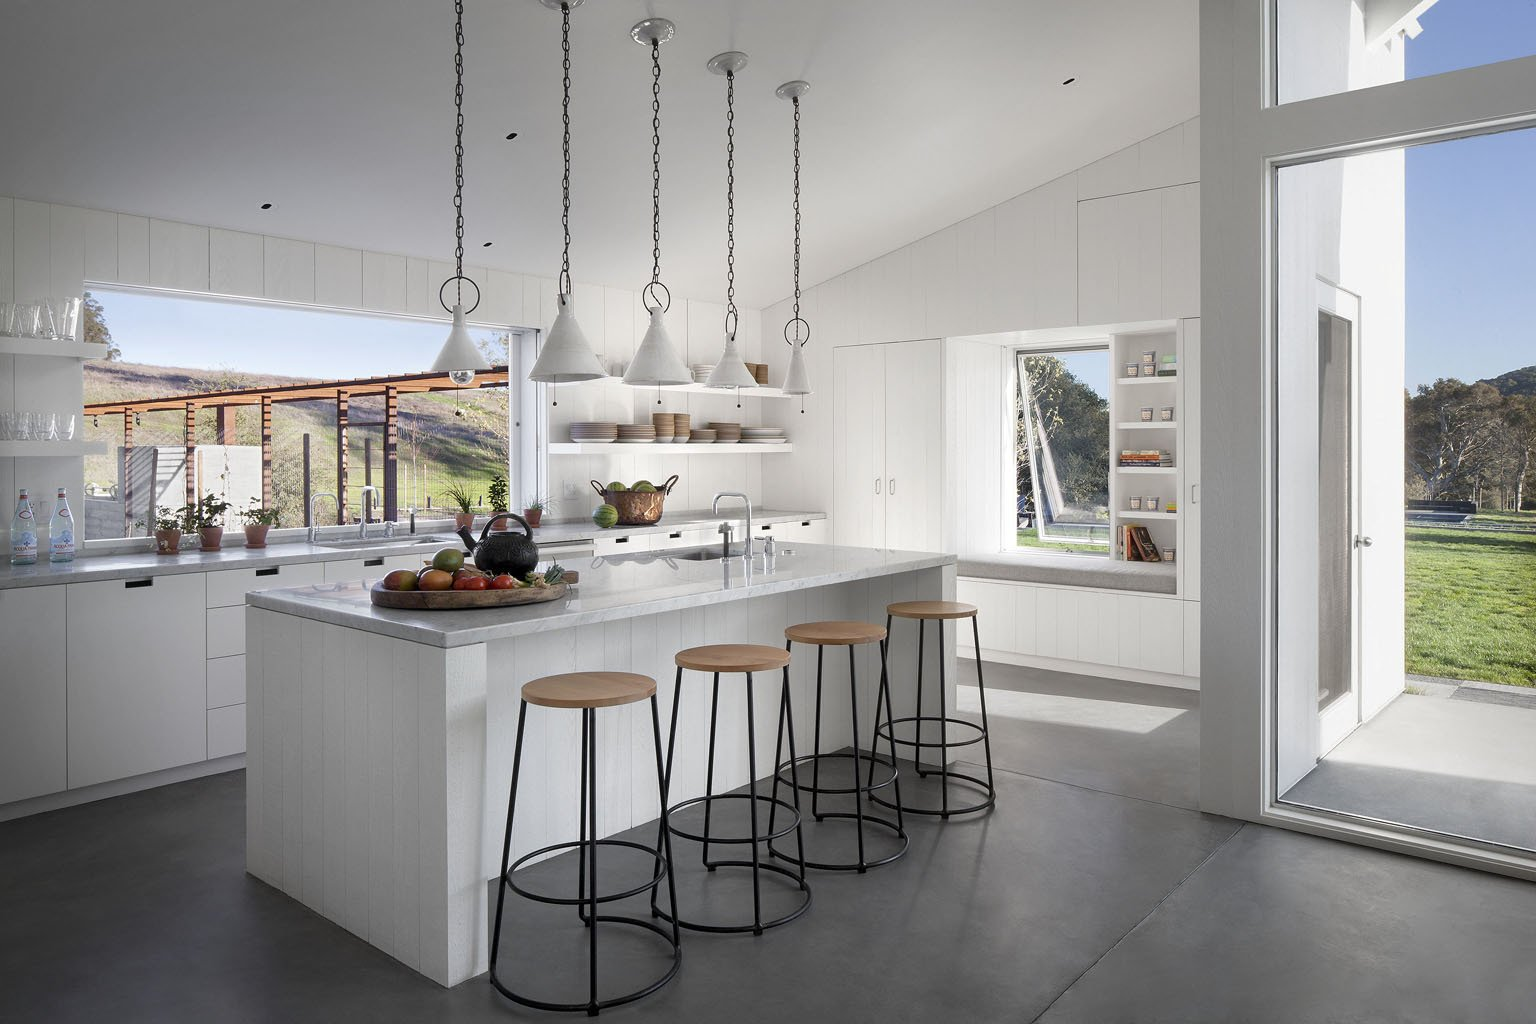 Carrara marble countertops by Franke spread through the kitchen around two sinks. Custom doors by Liberty Valley connect the common rooms to the backyard.  A LEED Platinum Family Home Takes the Place of an Abandoned California Farmhouse  by Kelly Dawson